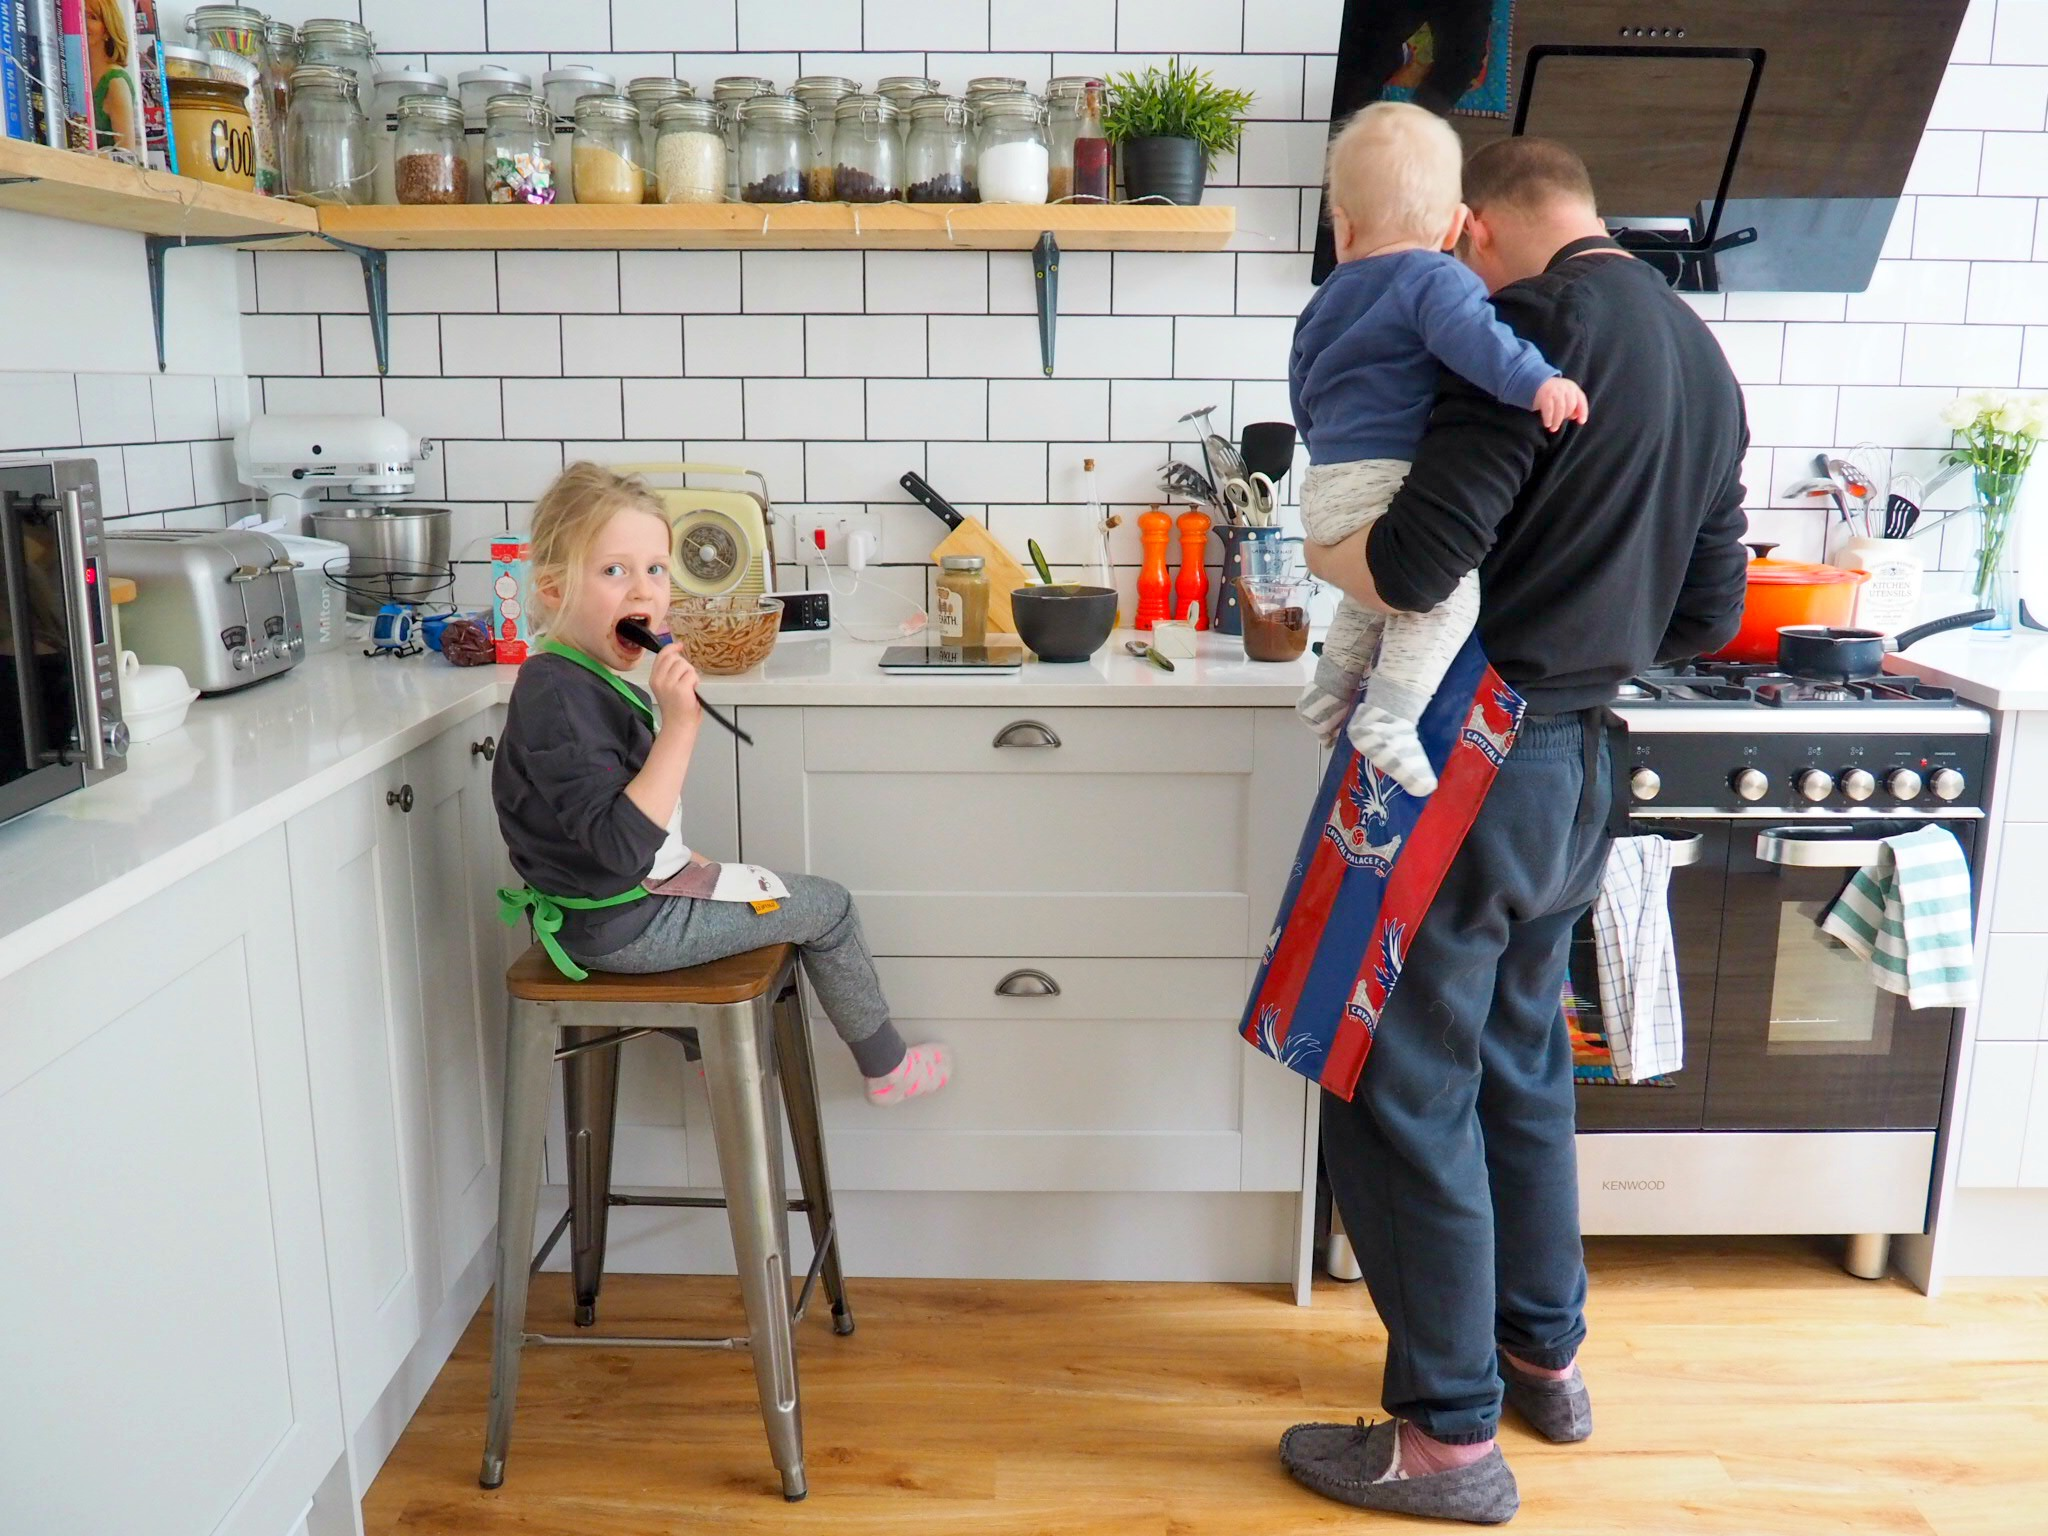 Our family baking hobby and WIN a KitchenAid Classic Stand Mixer